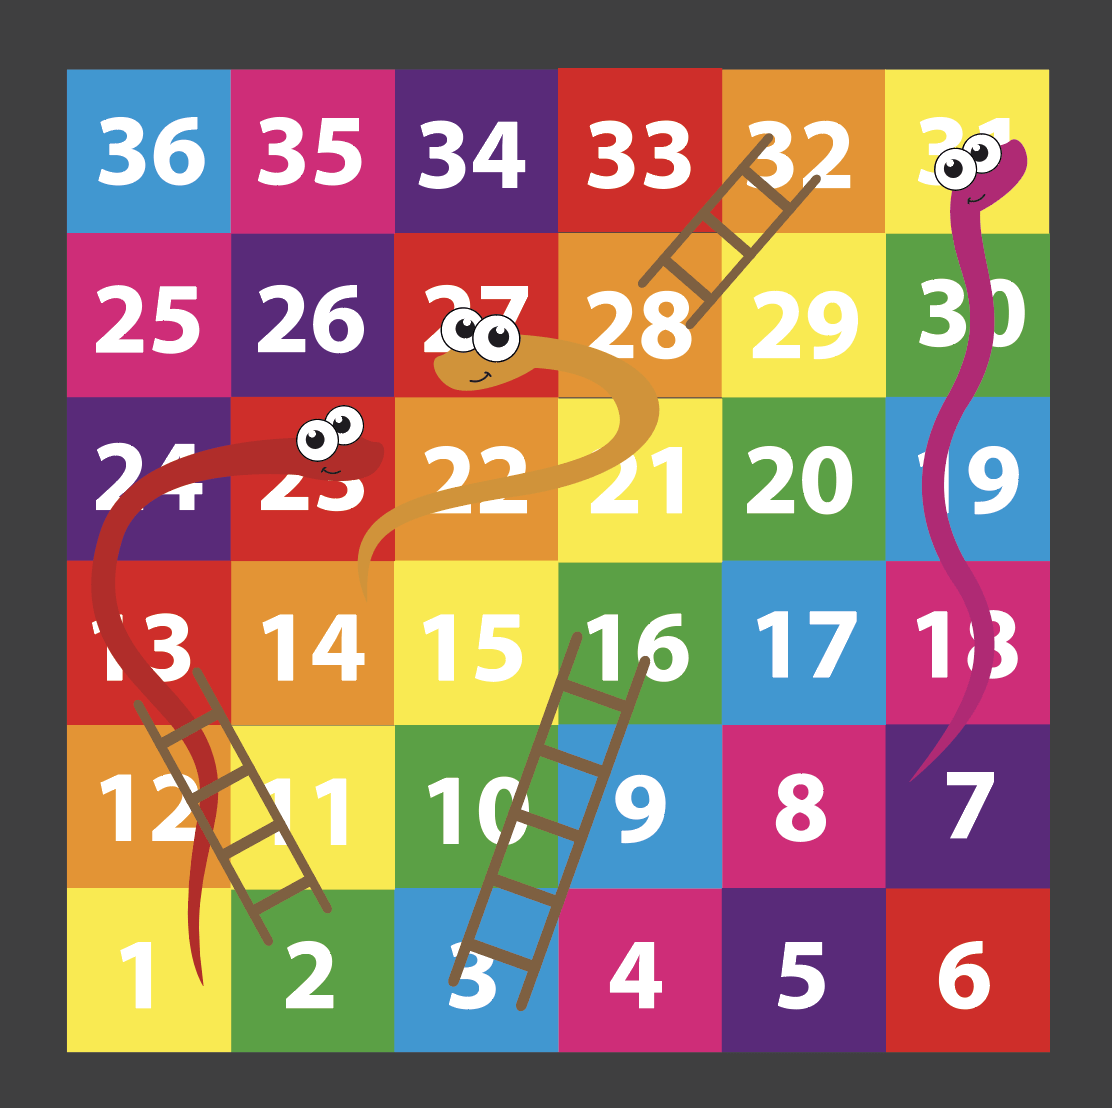 An image of a Snakes & Ladders 1-36 Solid